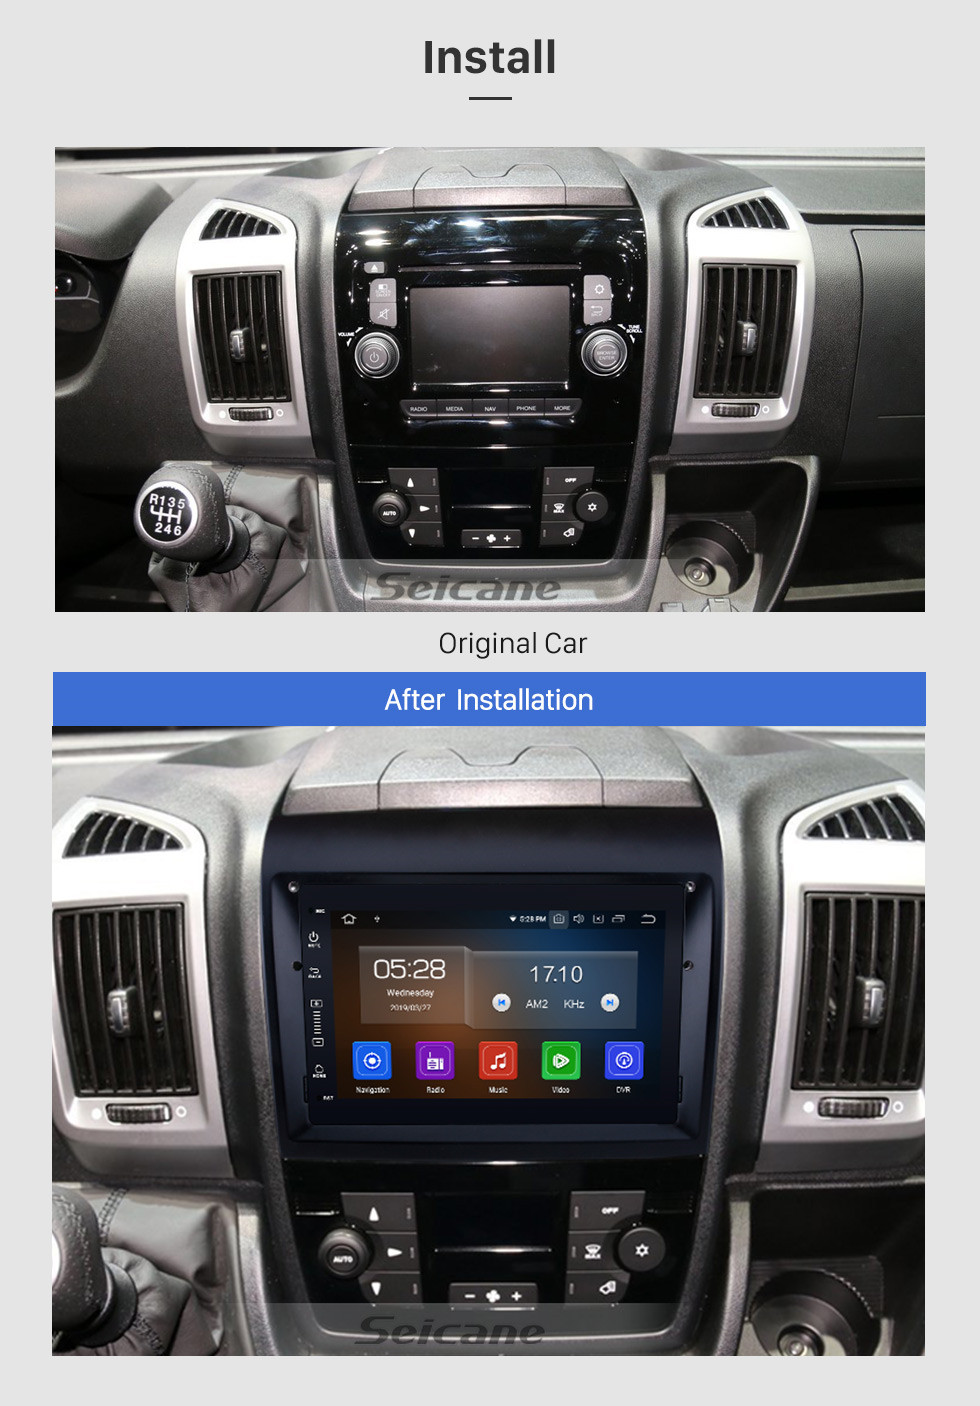 Seicane 2007-2016 Fiat Ducato Aftermarket 7 Zoll Android 9.0 Radio DVD Multimedia Player GPS Navigationssystem Upgrate Headunit mit Bluetooth Musik 3G Wifi Spiegel Link Lenkradsteuerung Rückfahrkamera DVR OBD2 DAB +